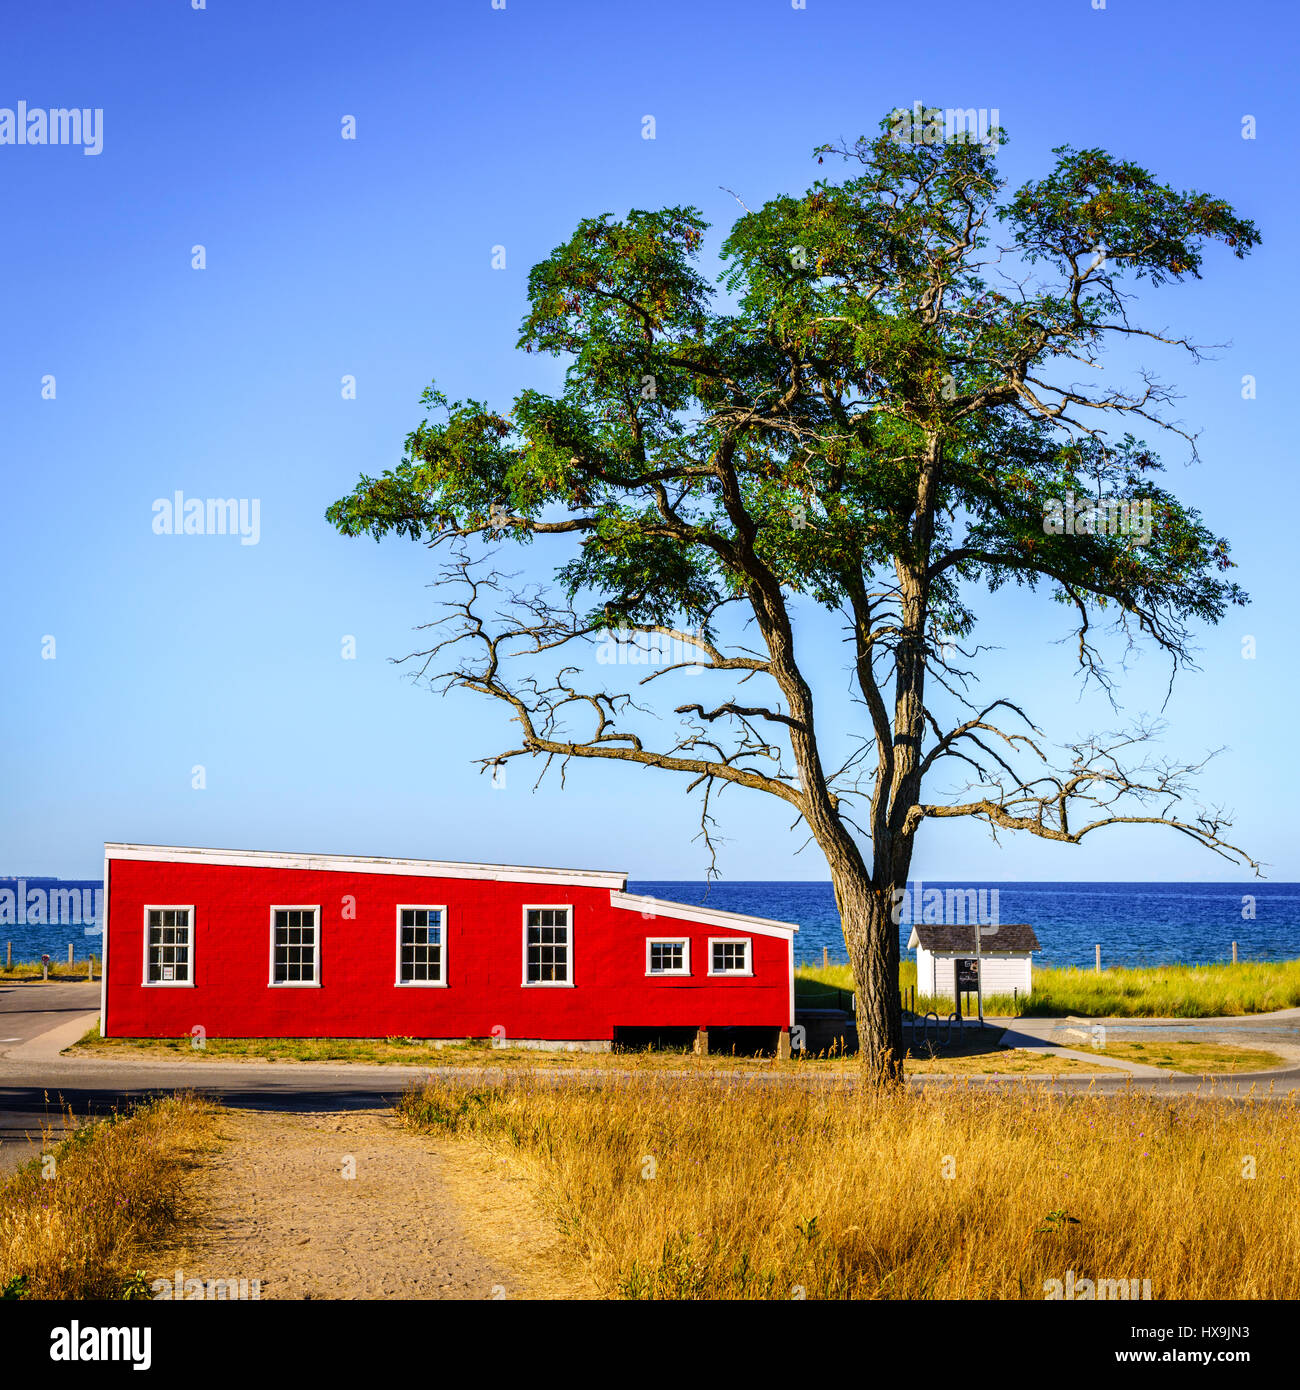 Lakefront street in Glen Arbor, Michigan - Stock Image